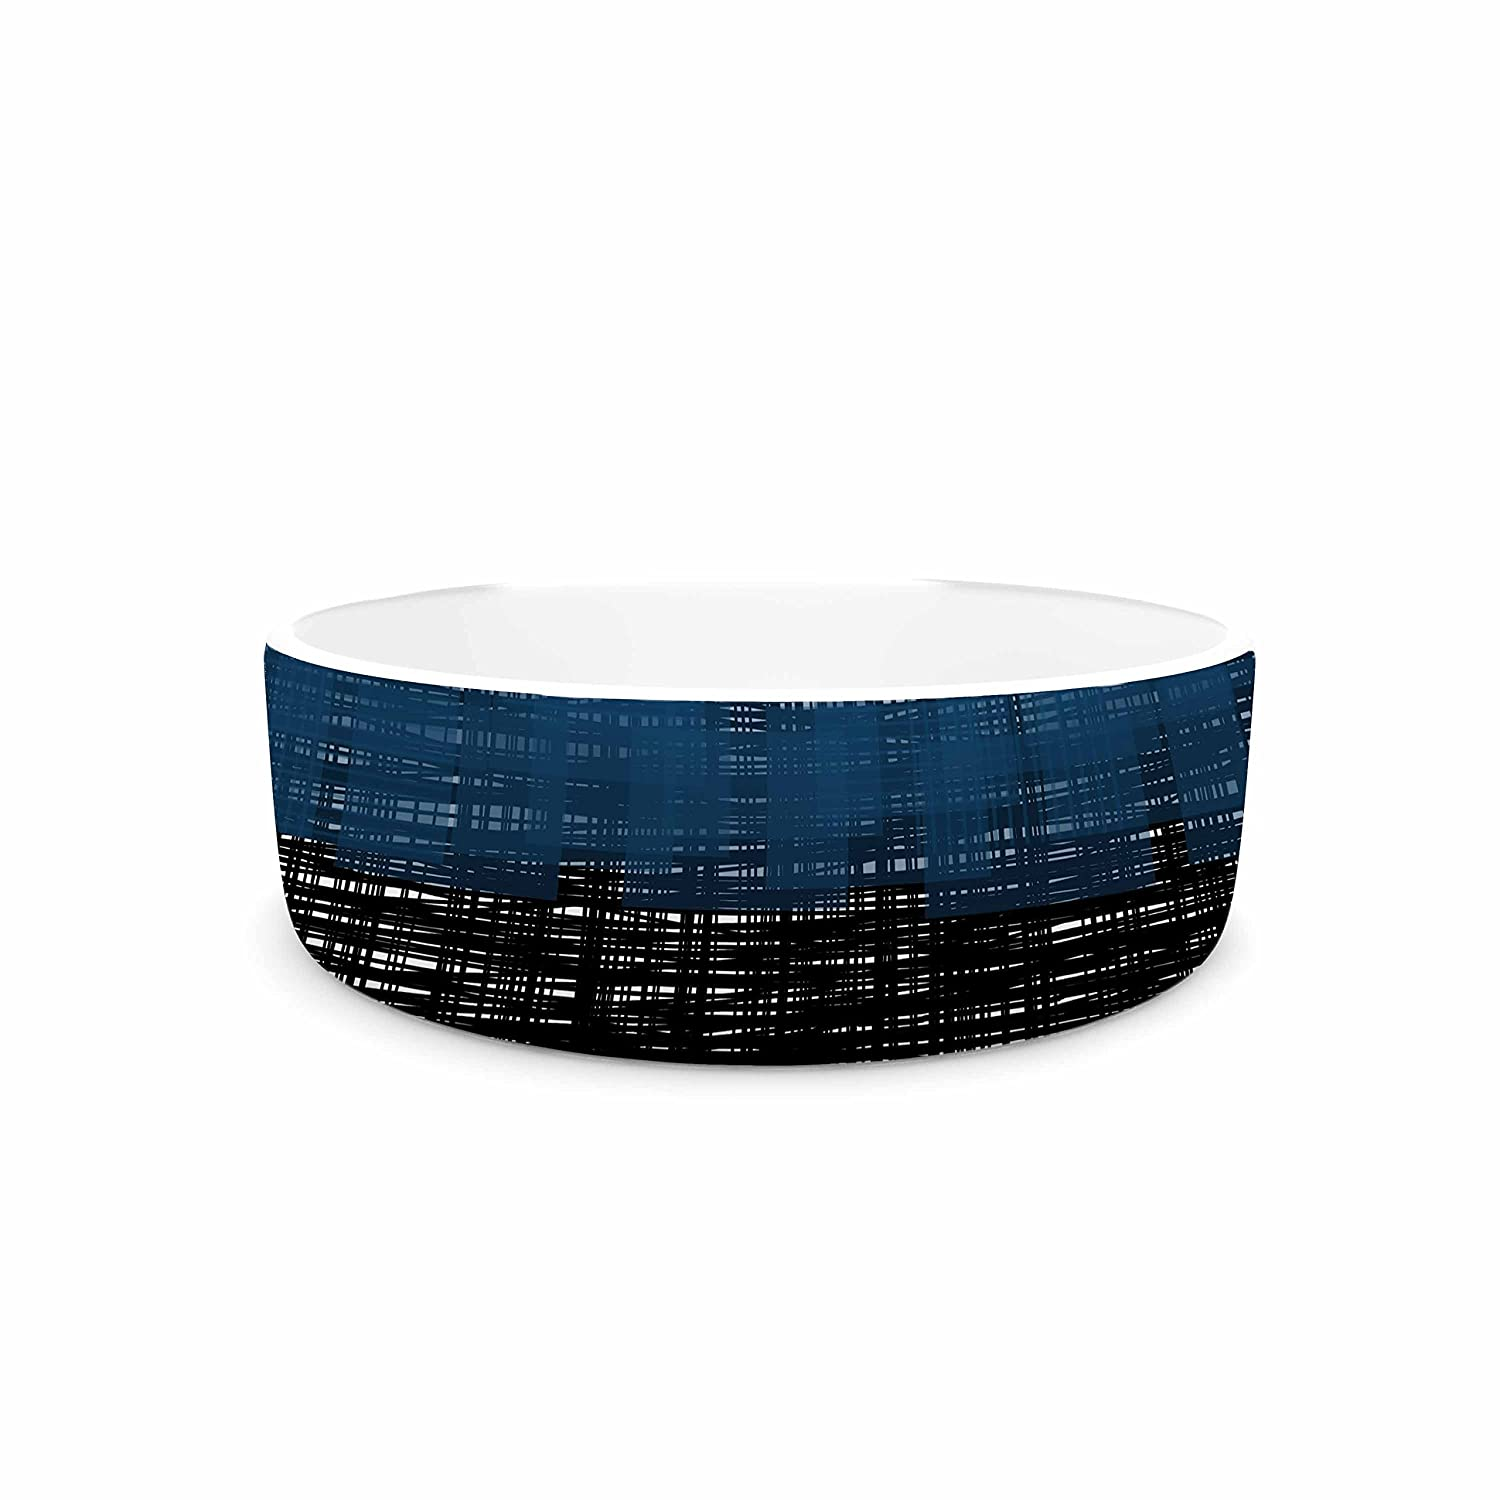 KESS InHouse Trebam Platno bluee Black Pet Bowl, 7